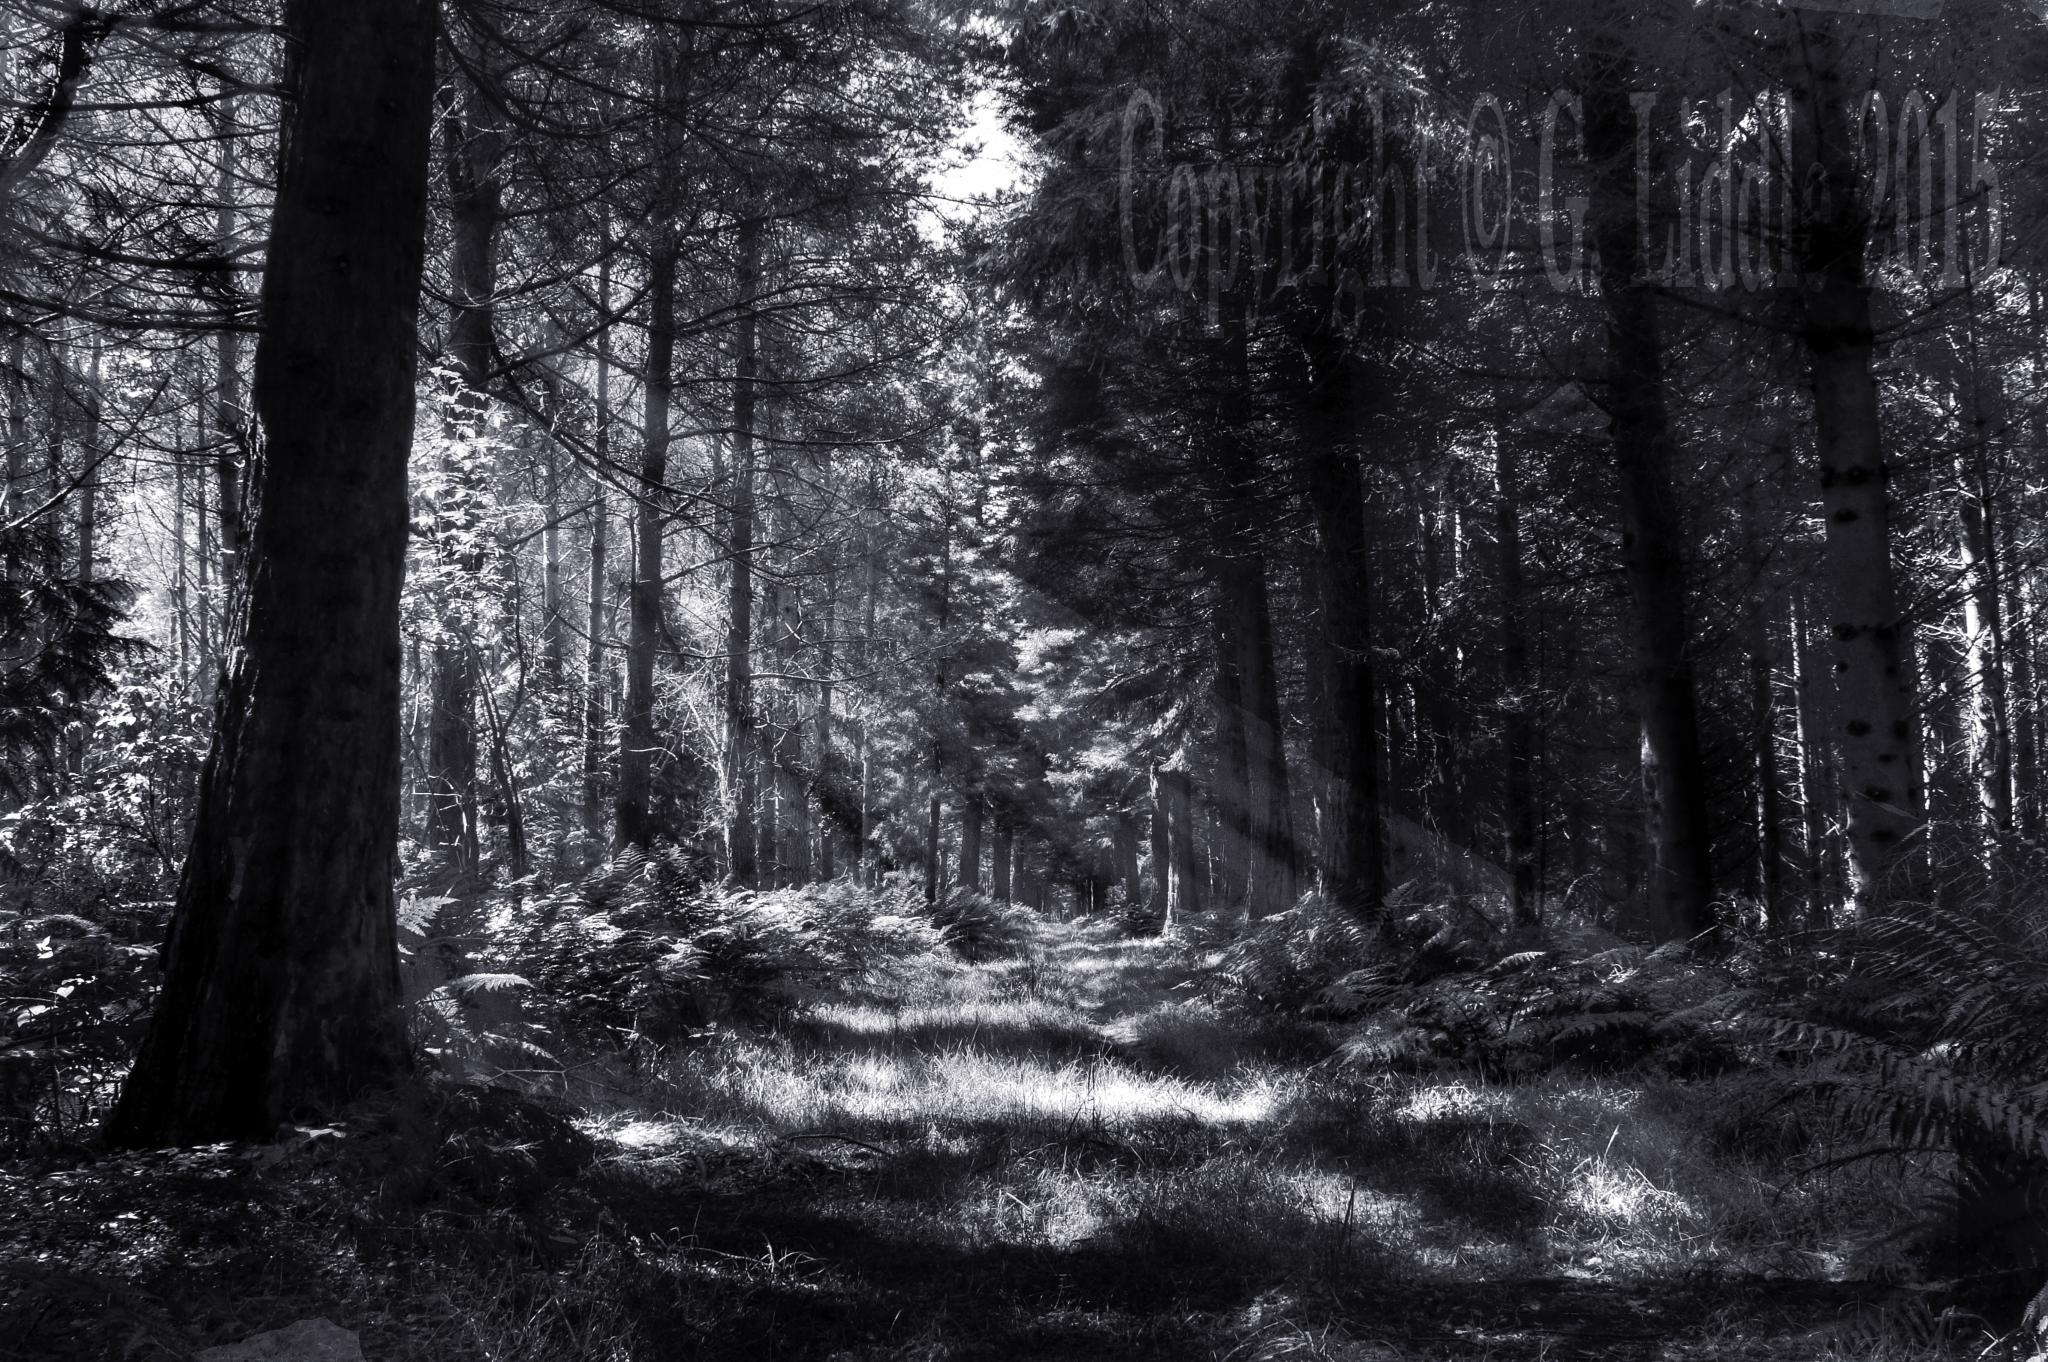 Bowmont Forest by Gav_Liddle